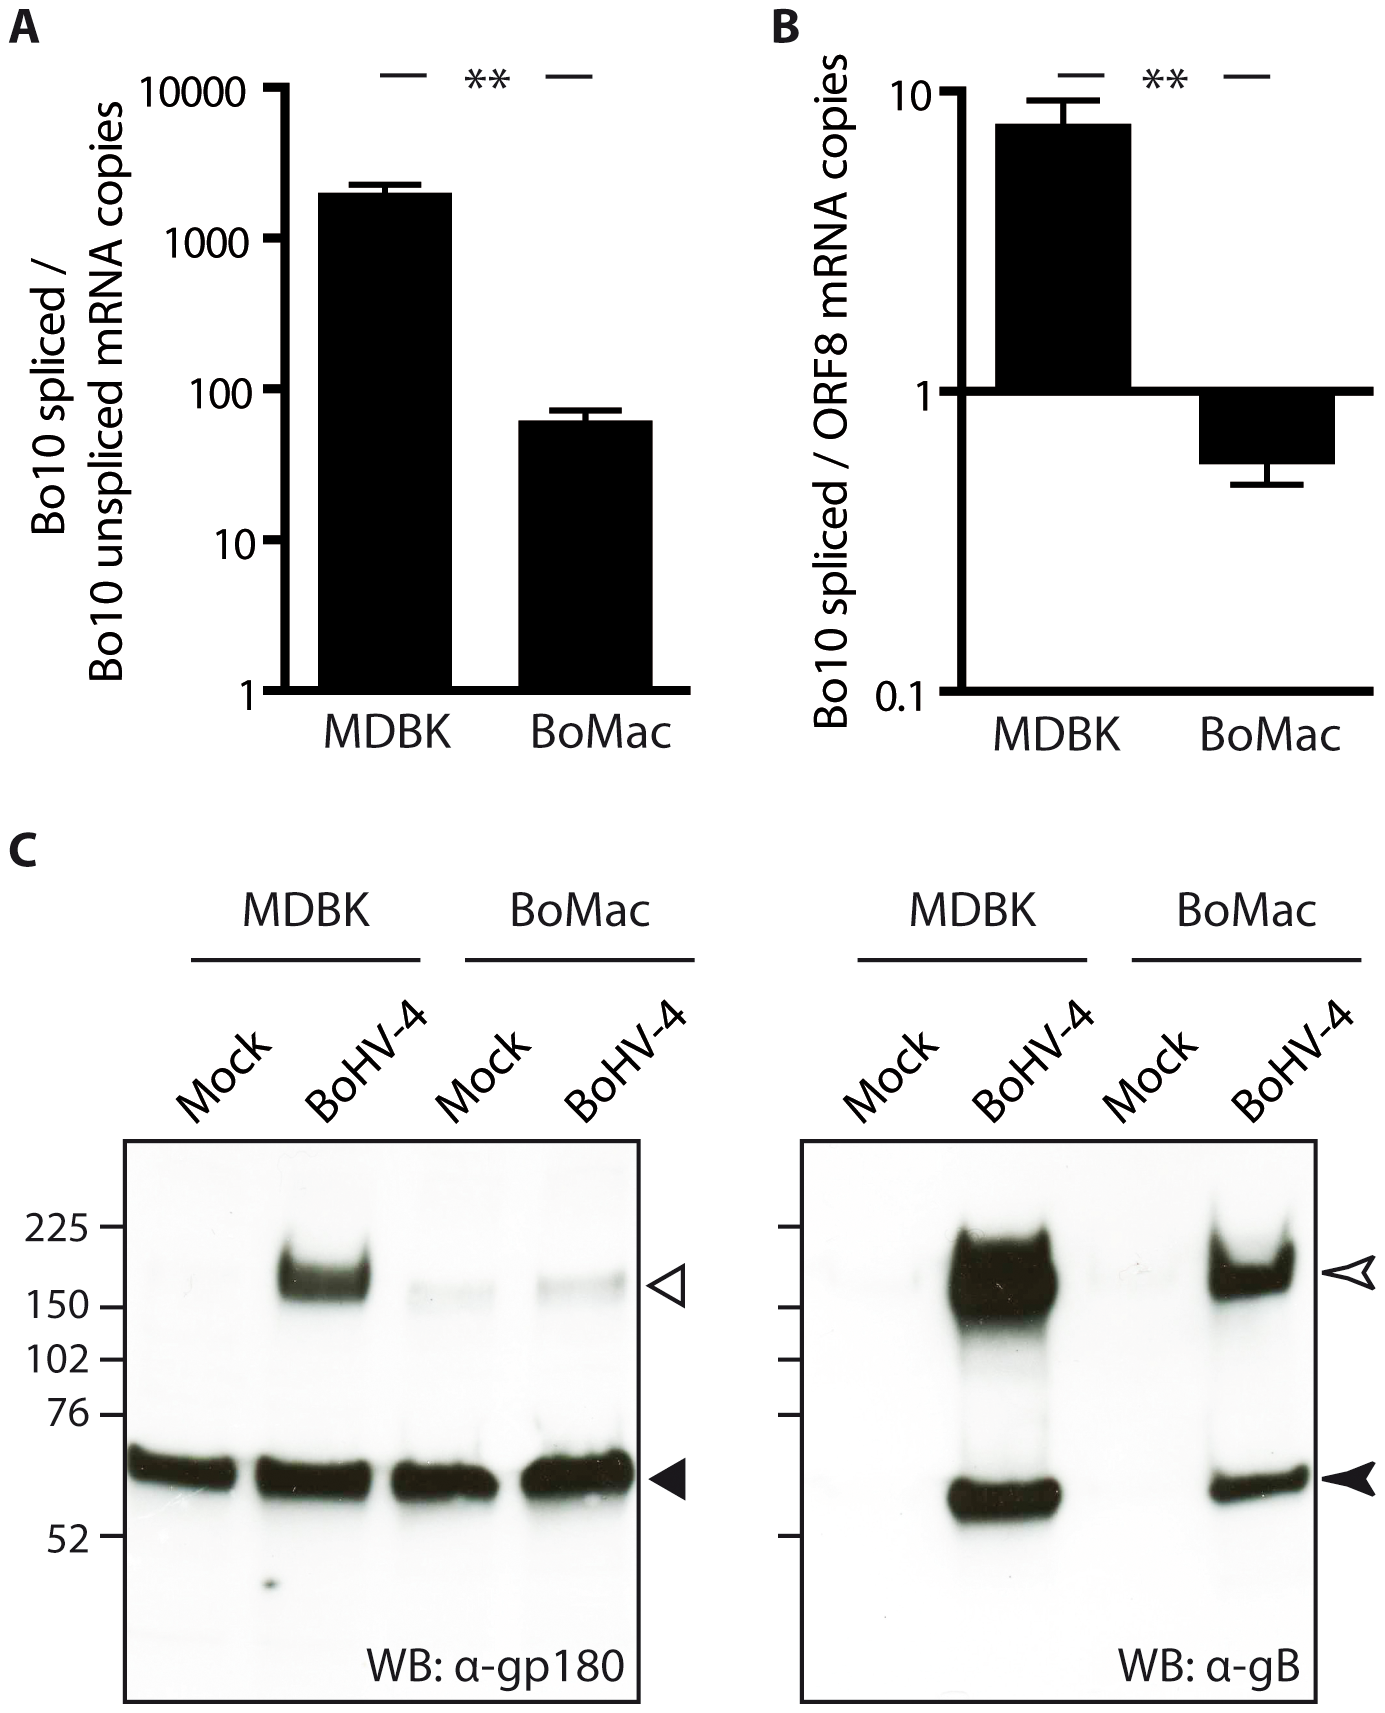 BoMac myeloid cells express relatively less gp180 glycoprotein in comparison with epithelial cells.